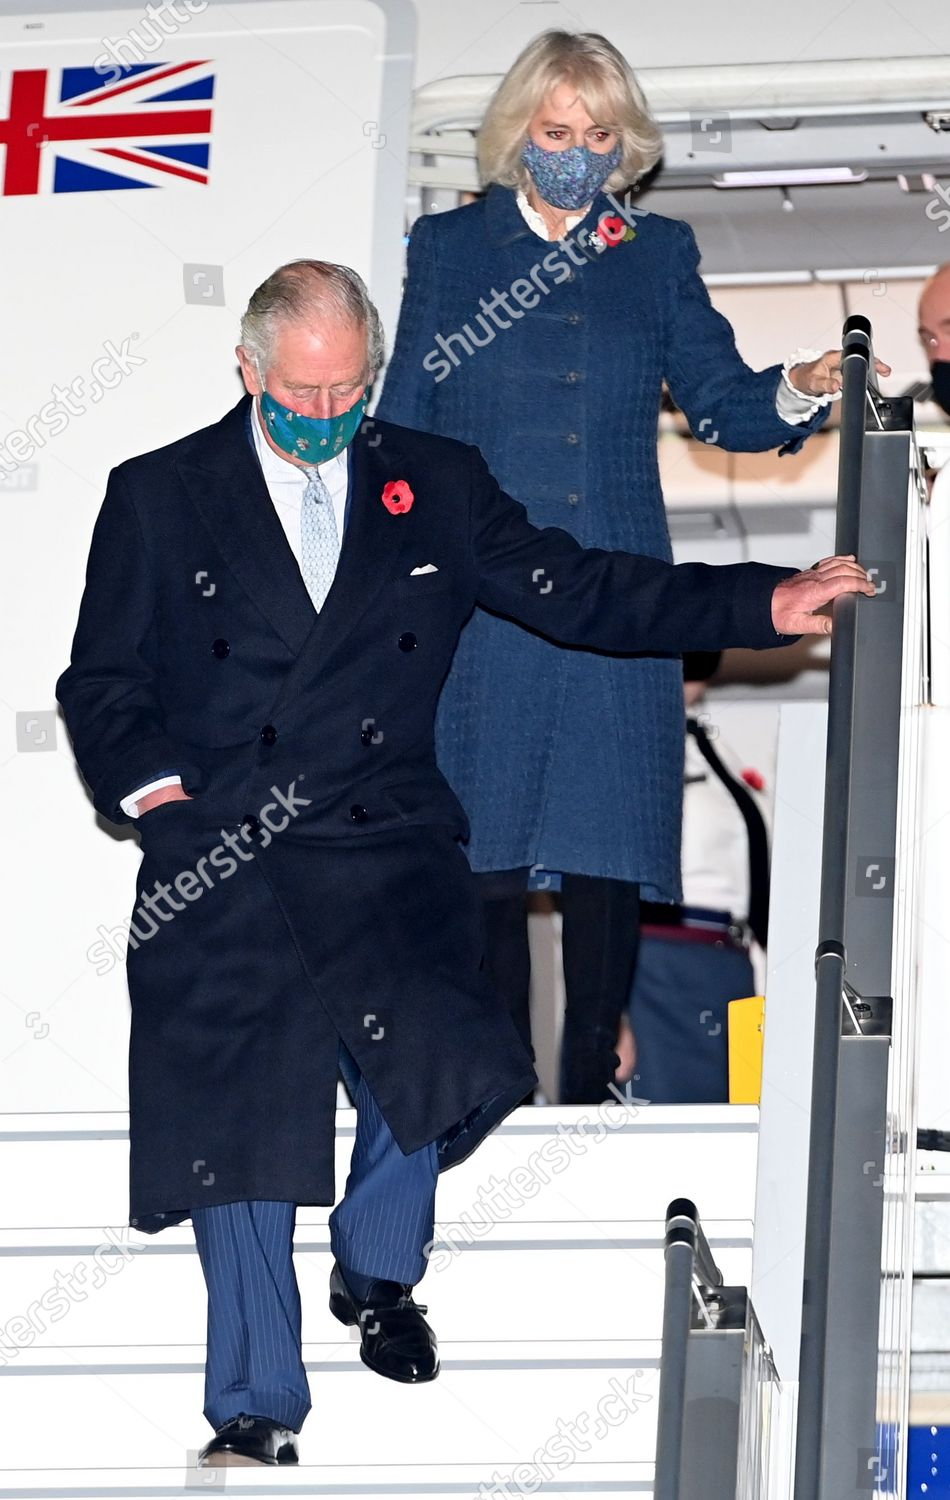 prince-charles-and-camilla-duchess-of-cornwall-visit-to-berlin-germany-shutterstock-editorial-11016152f.jpg